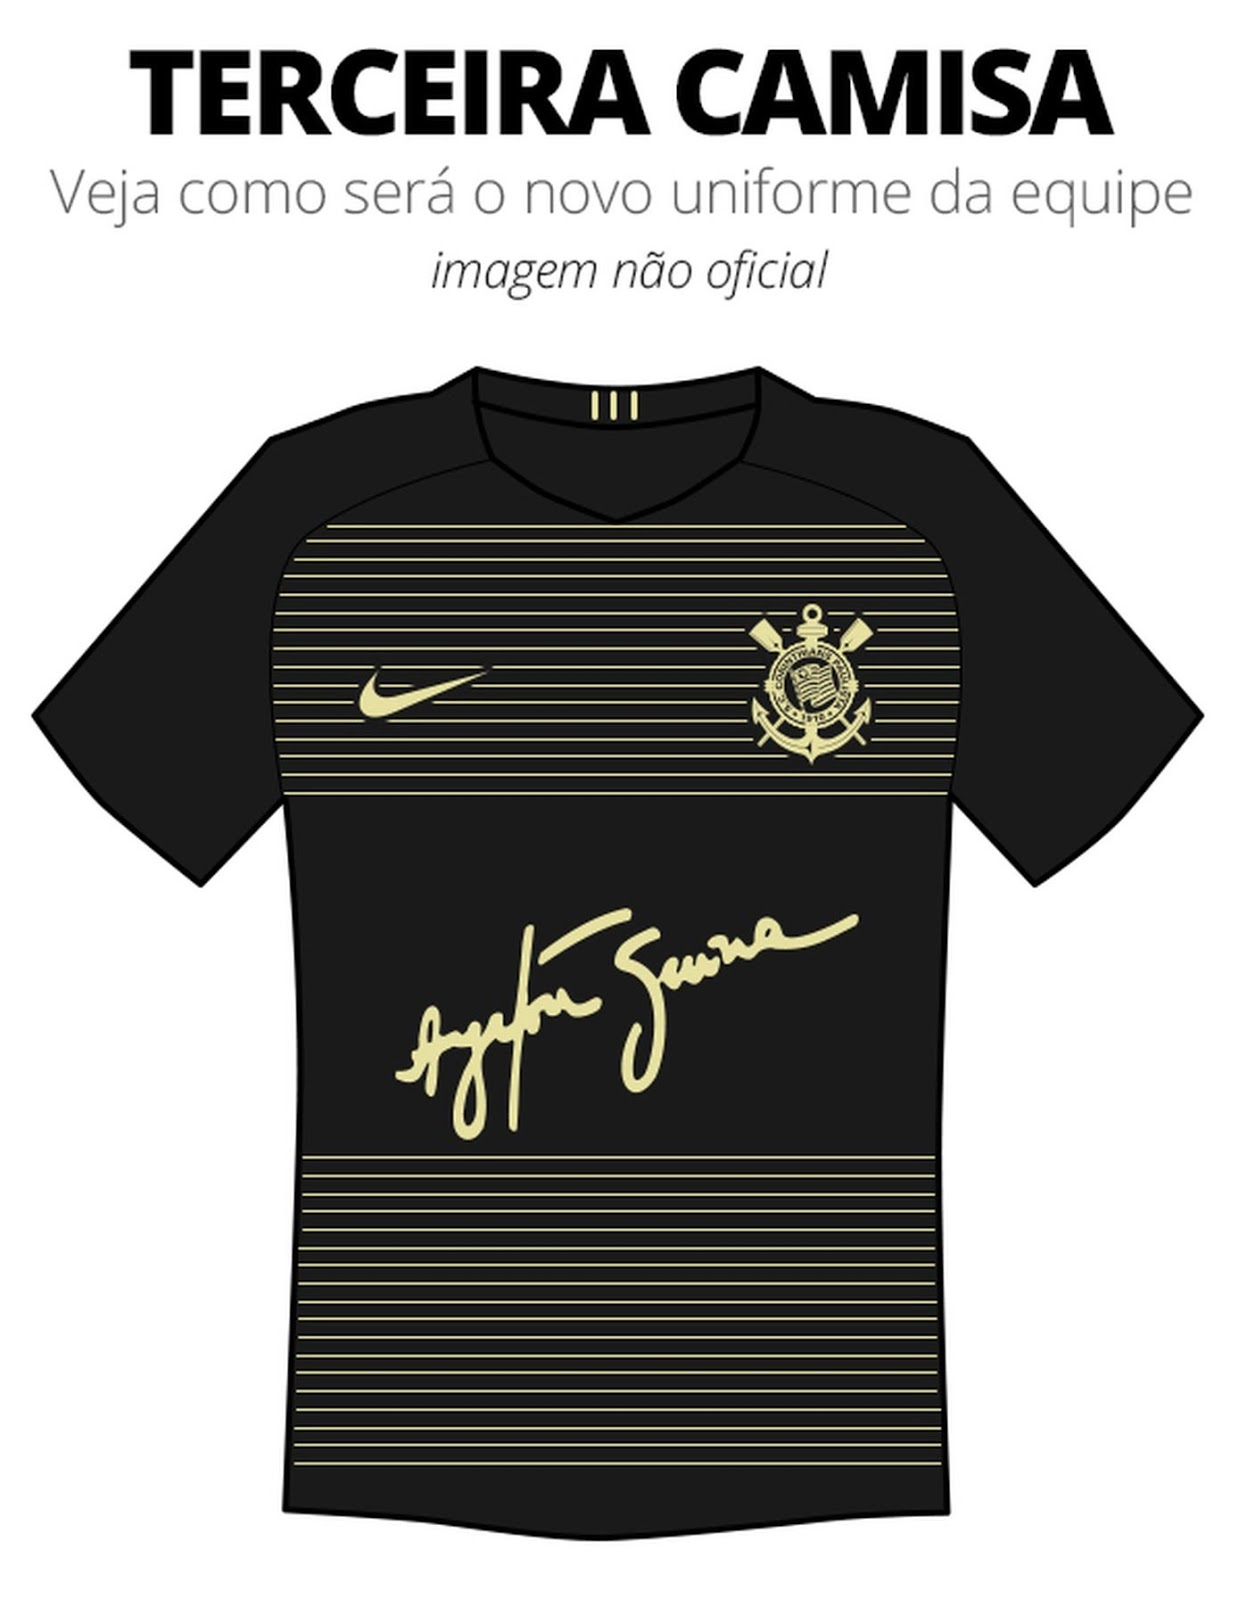 05e5b29efd3 Yükle (1239x1600)Corinthians may homage Ayrton Senna with a  jerseyCorinthians may homage Ayrton Senna with a jersey According to  reports from.